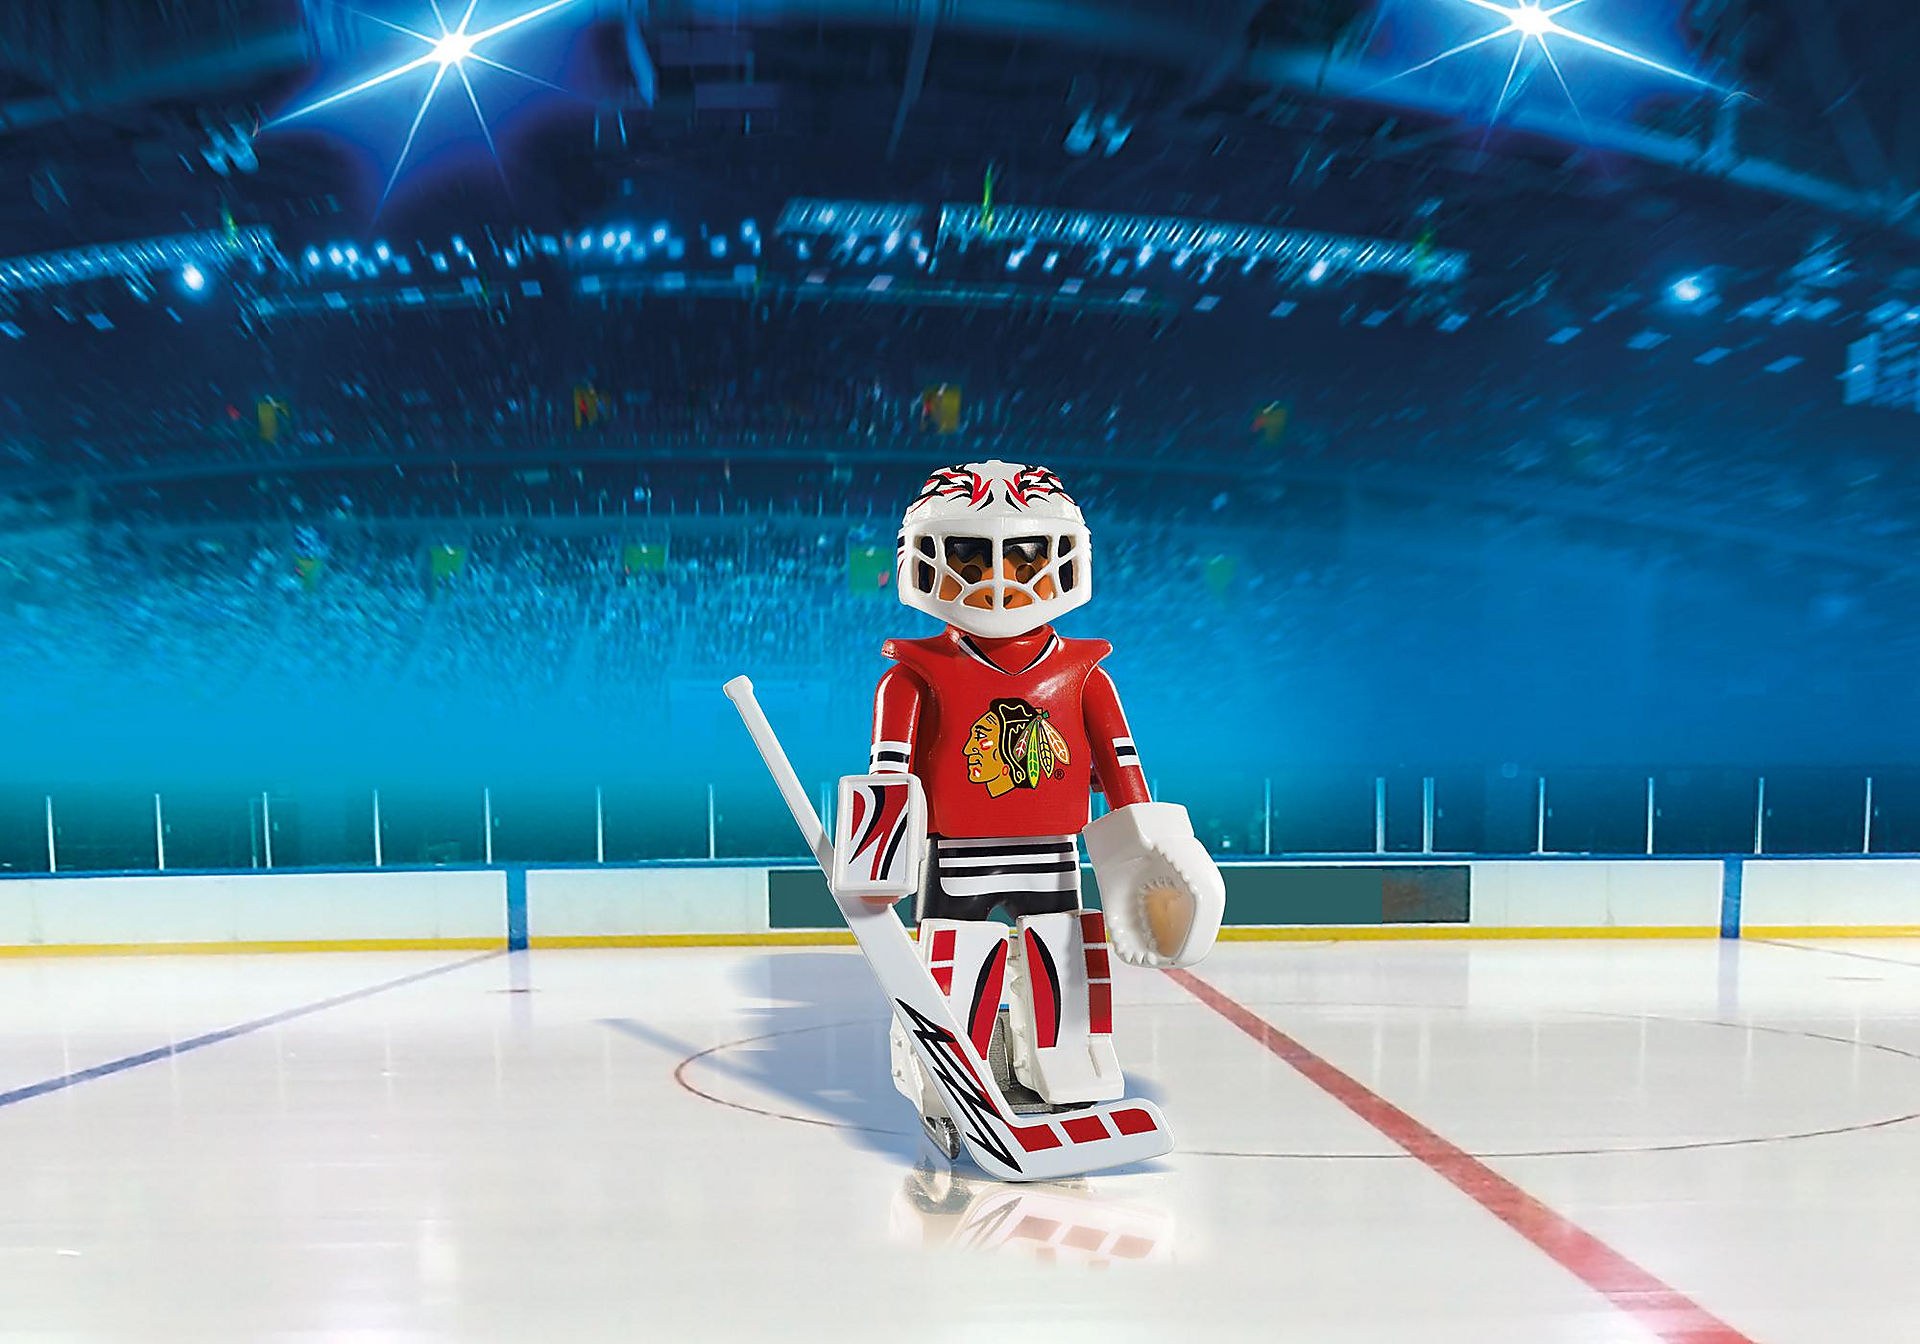 5074 NHL™ Chicago Blackhawks™ Goalie zoom image1